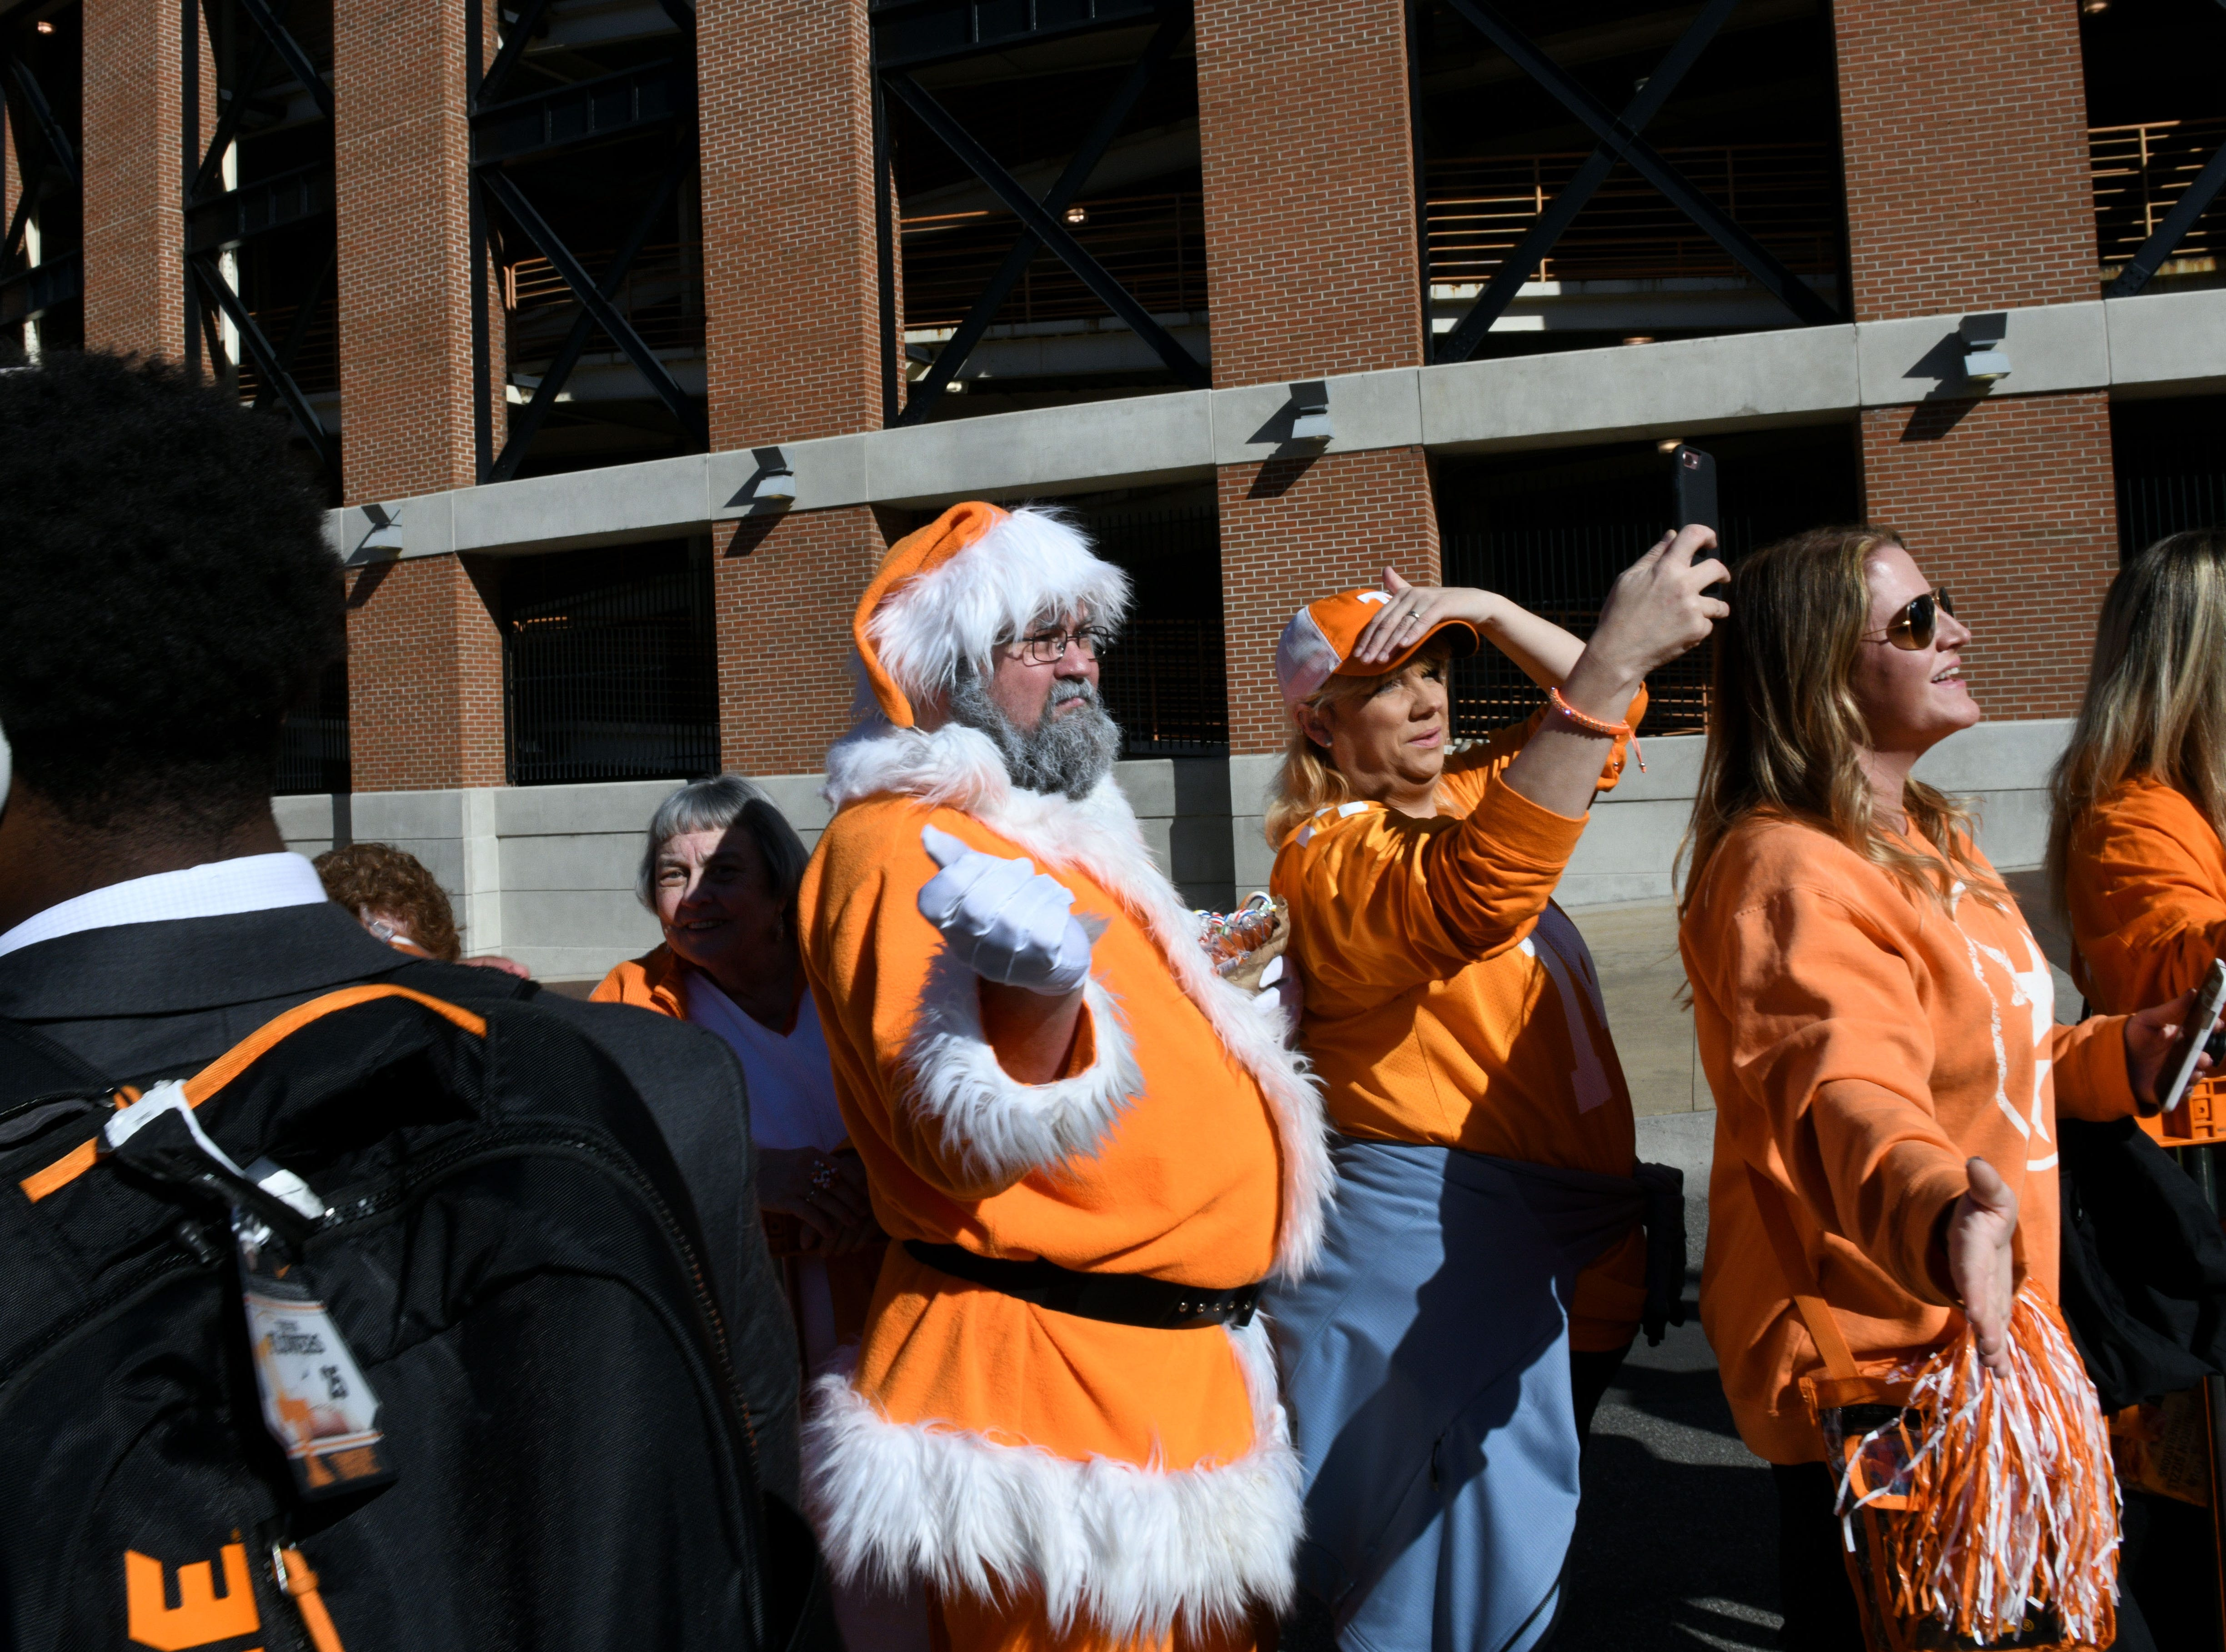 Tennessee fans during the Vol Walk before the Missouri game Saturday, Nov. 17, 2018 at Neyland Stadium in Knoxville, Tenn.